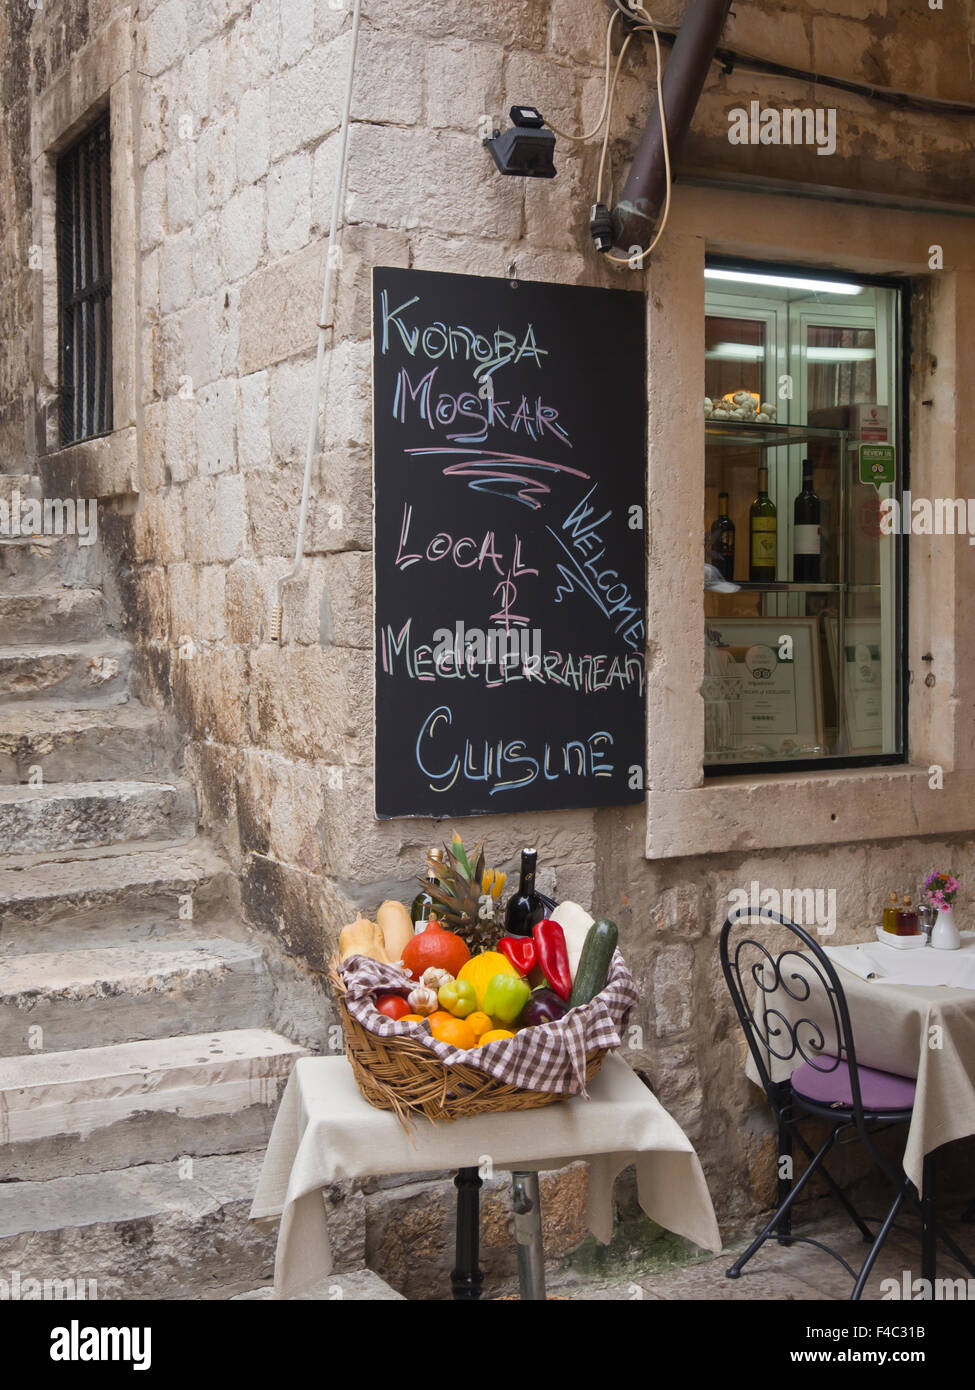 In the old town 'Stari Grad' of Dubrovnik Croatia there are lots of narrow streets with small inviting restaurants - Stock Image